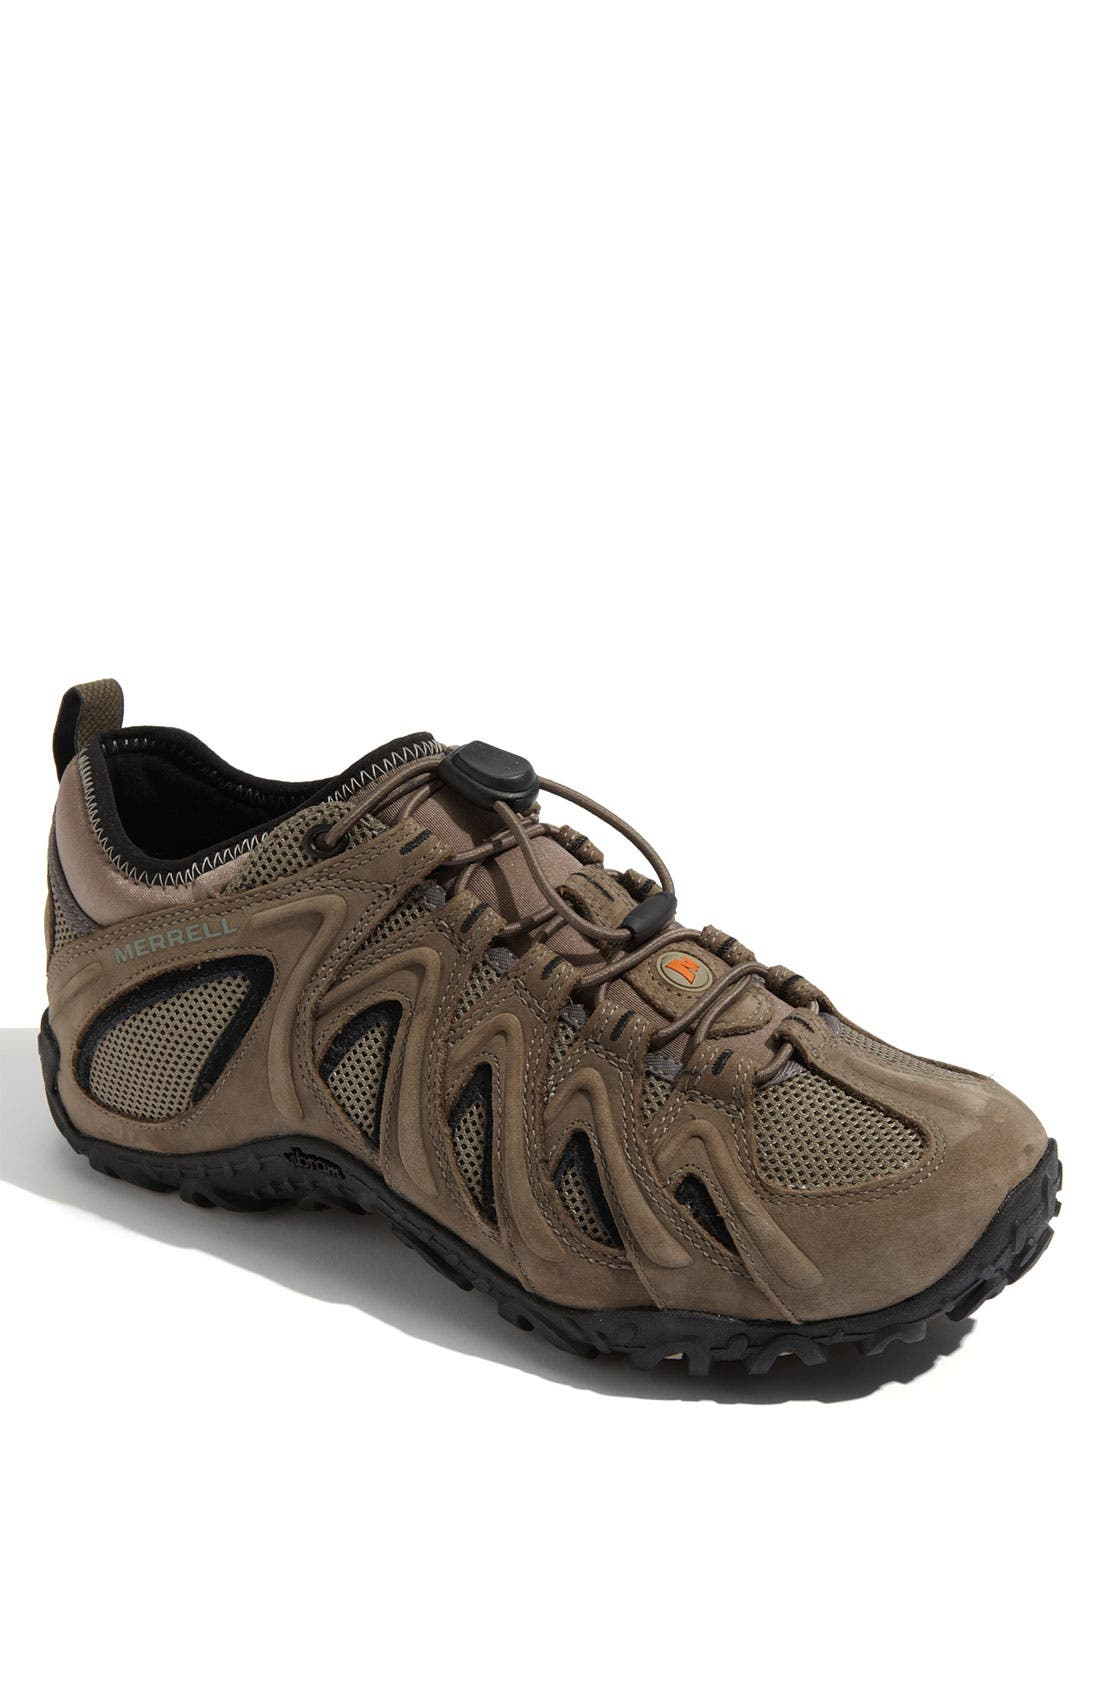 Main Image - Merrell 'Chameleon 4' Hiking Shoe (Men)